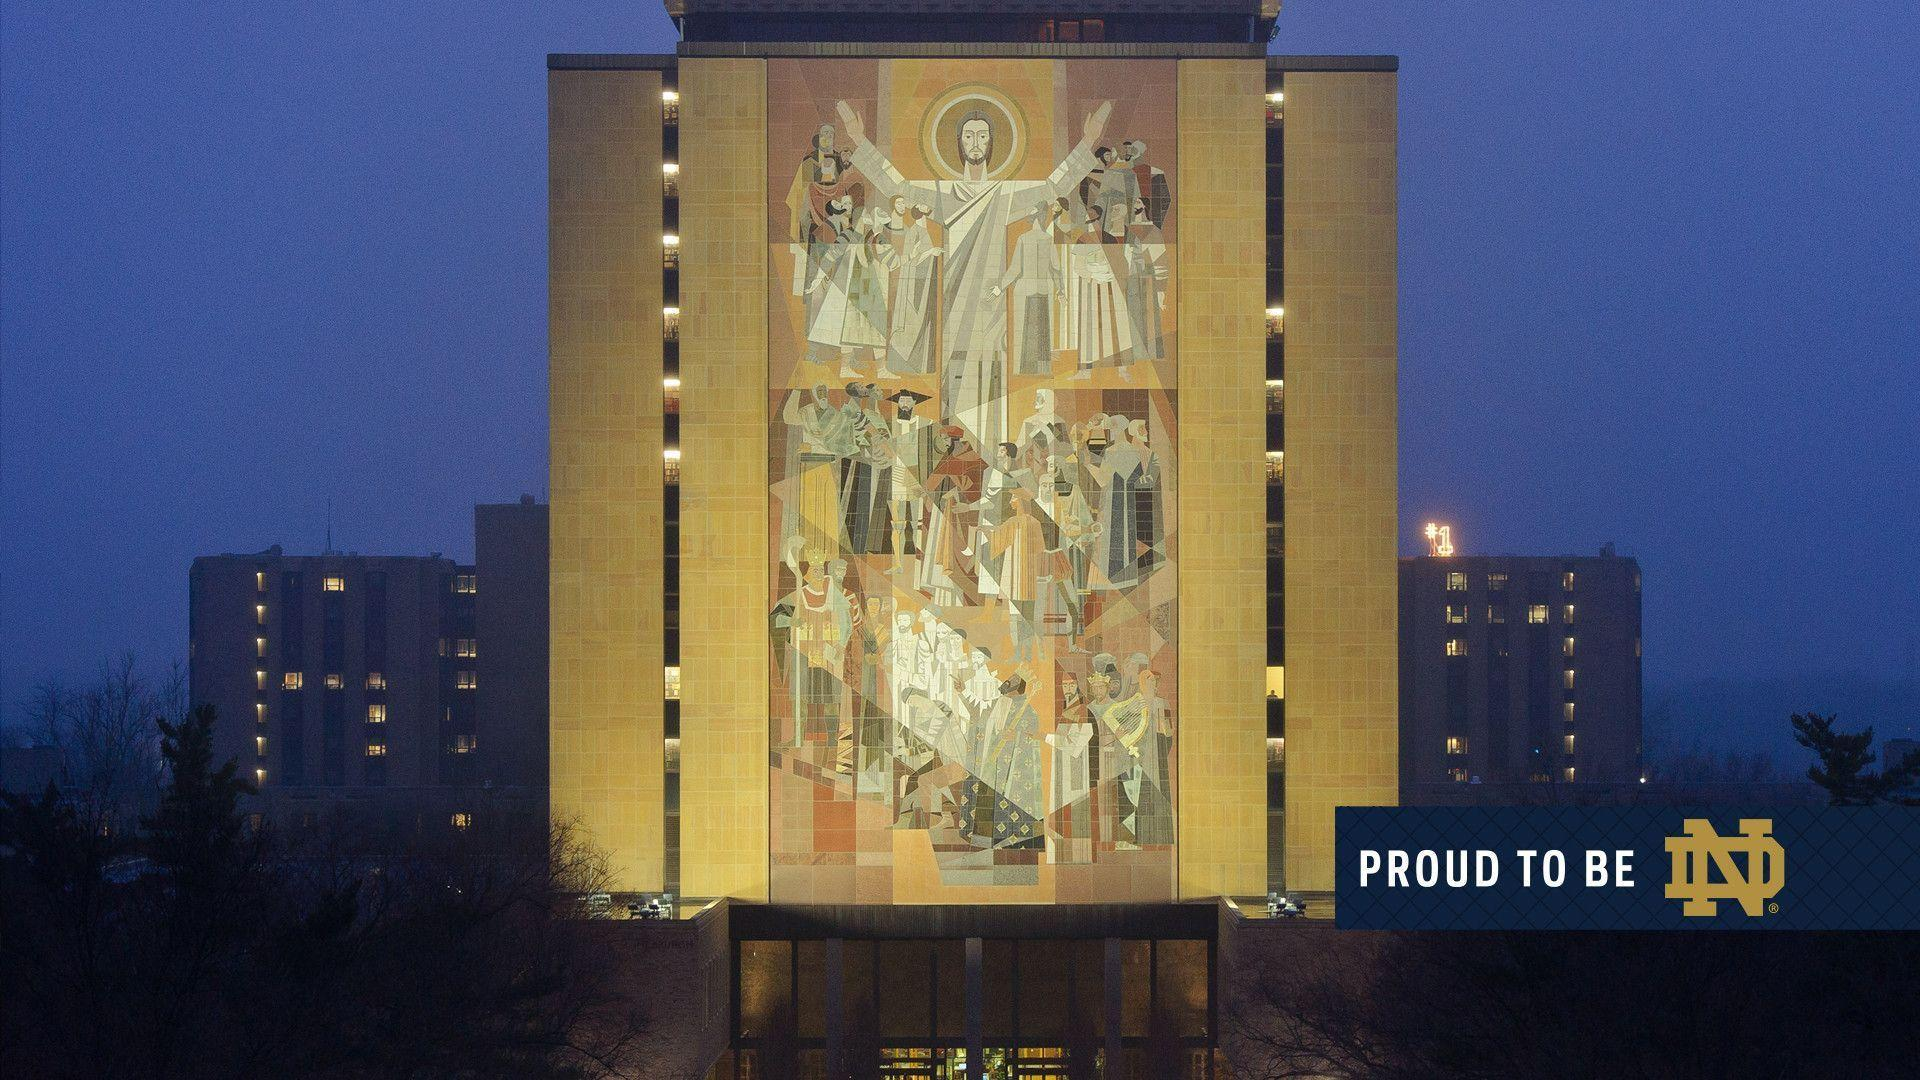 university of notre dame wallpaper - photo #17